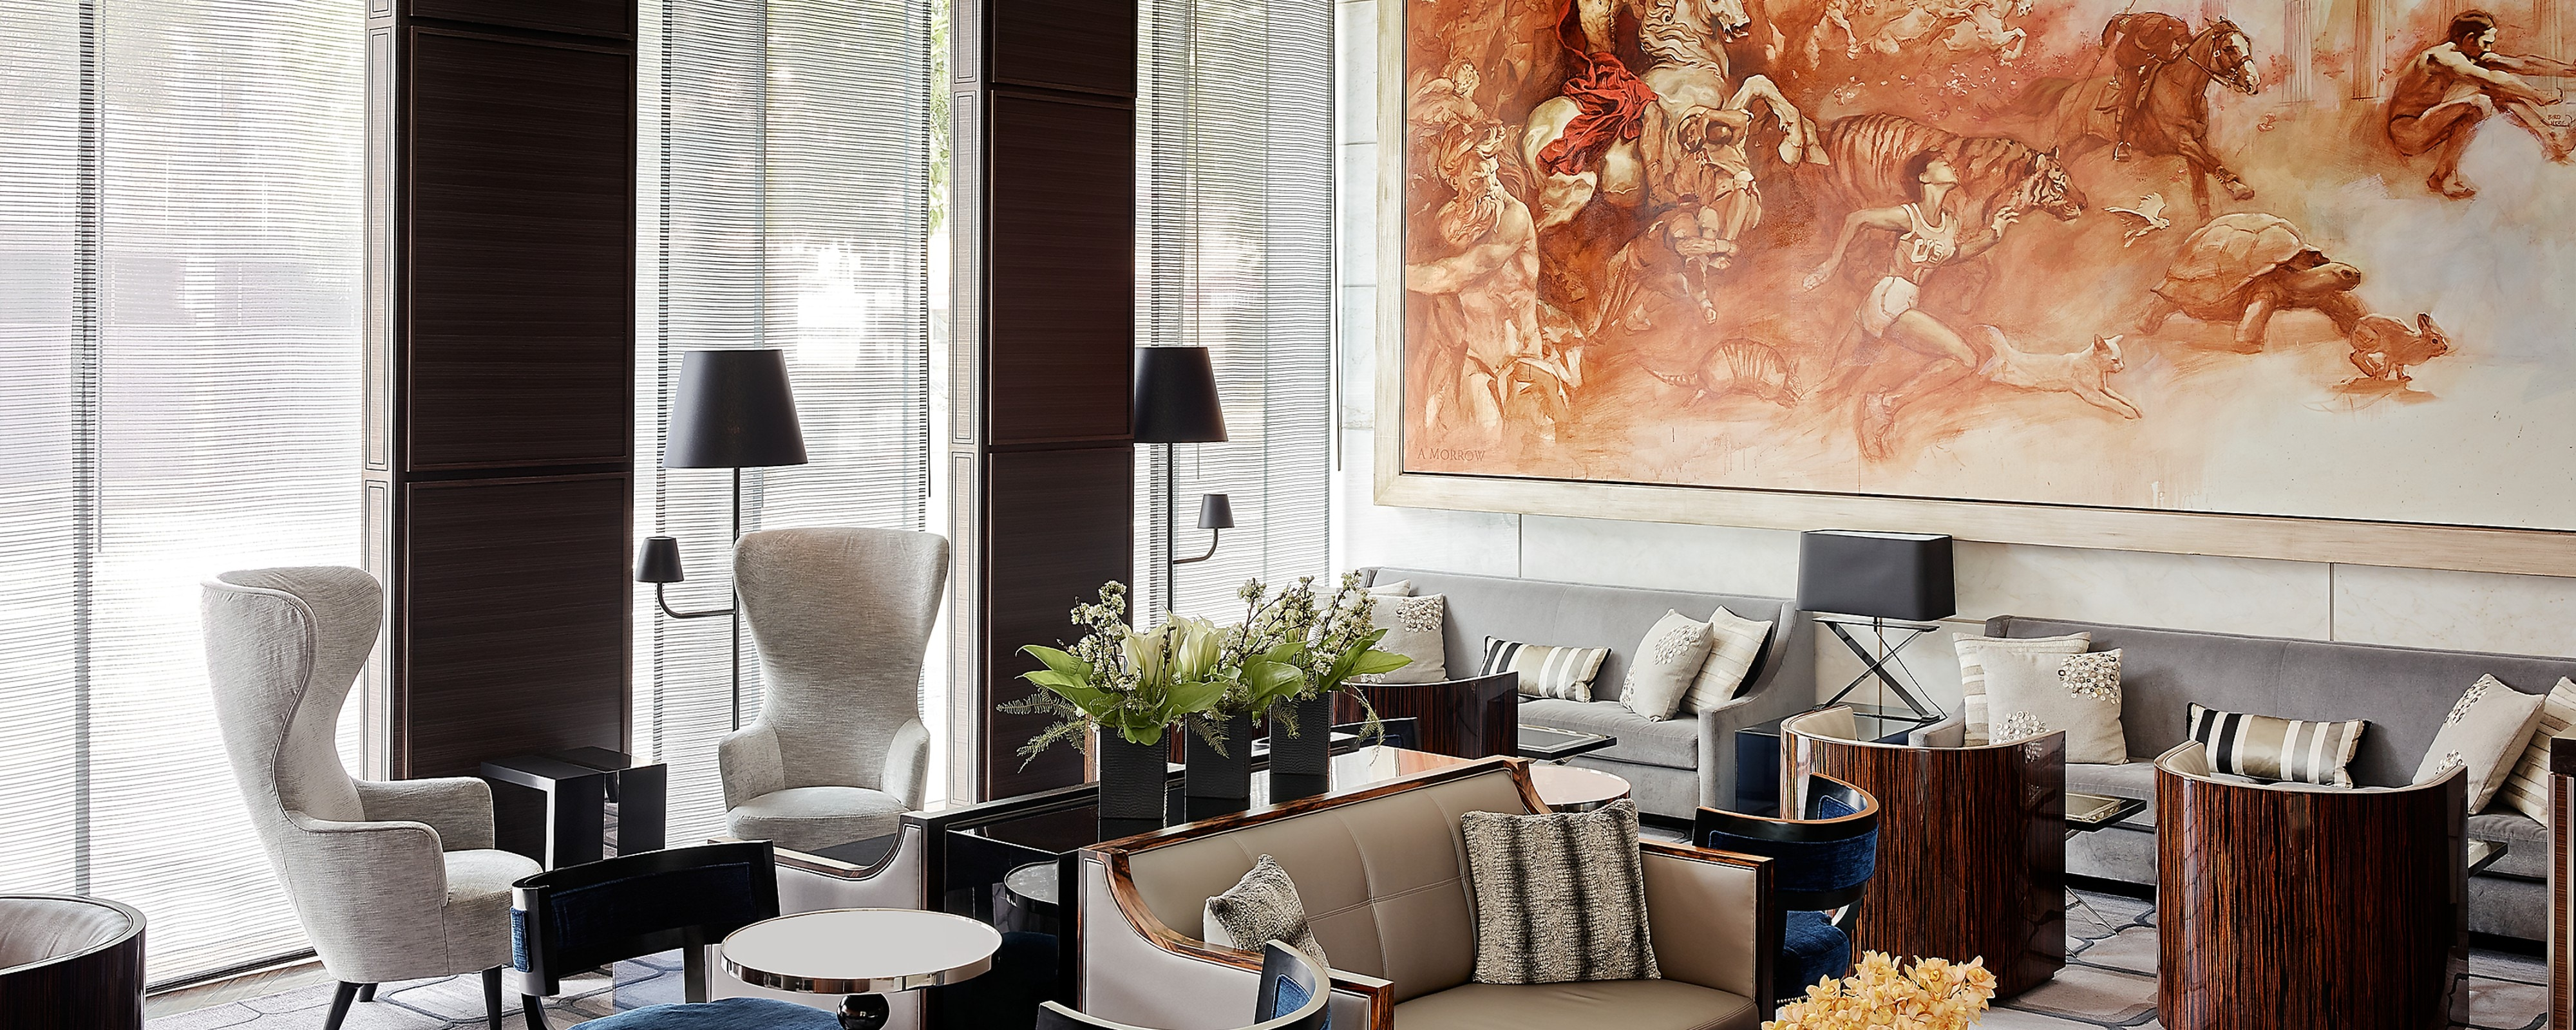 Luxury San Francisco Hotel - SoMa District | The St  Regis San Francisco